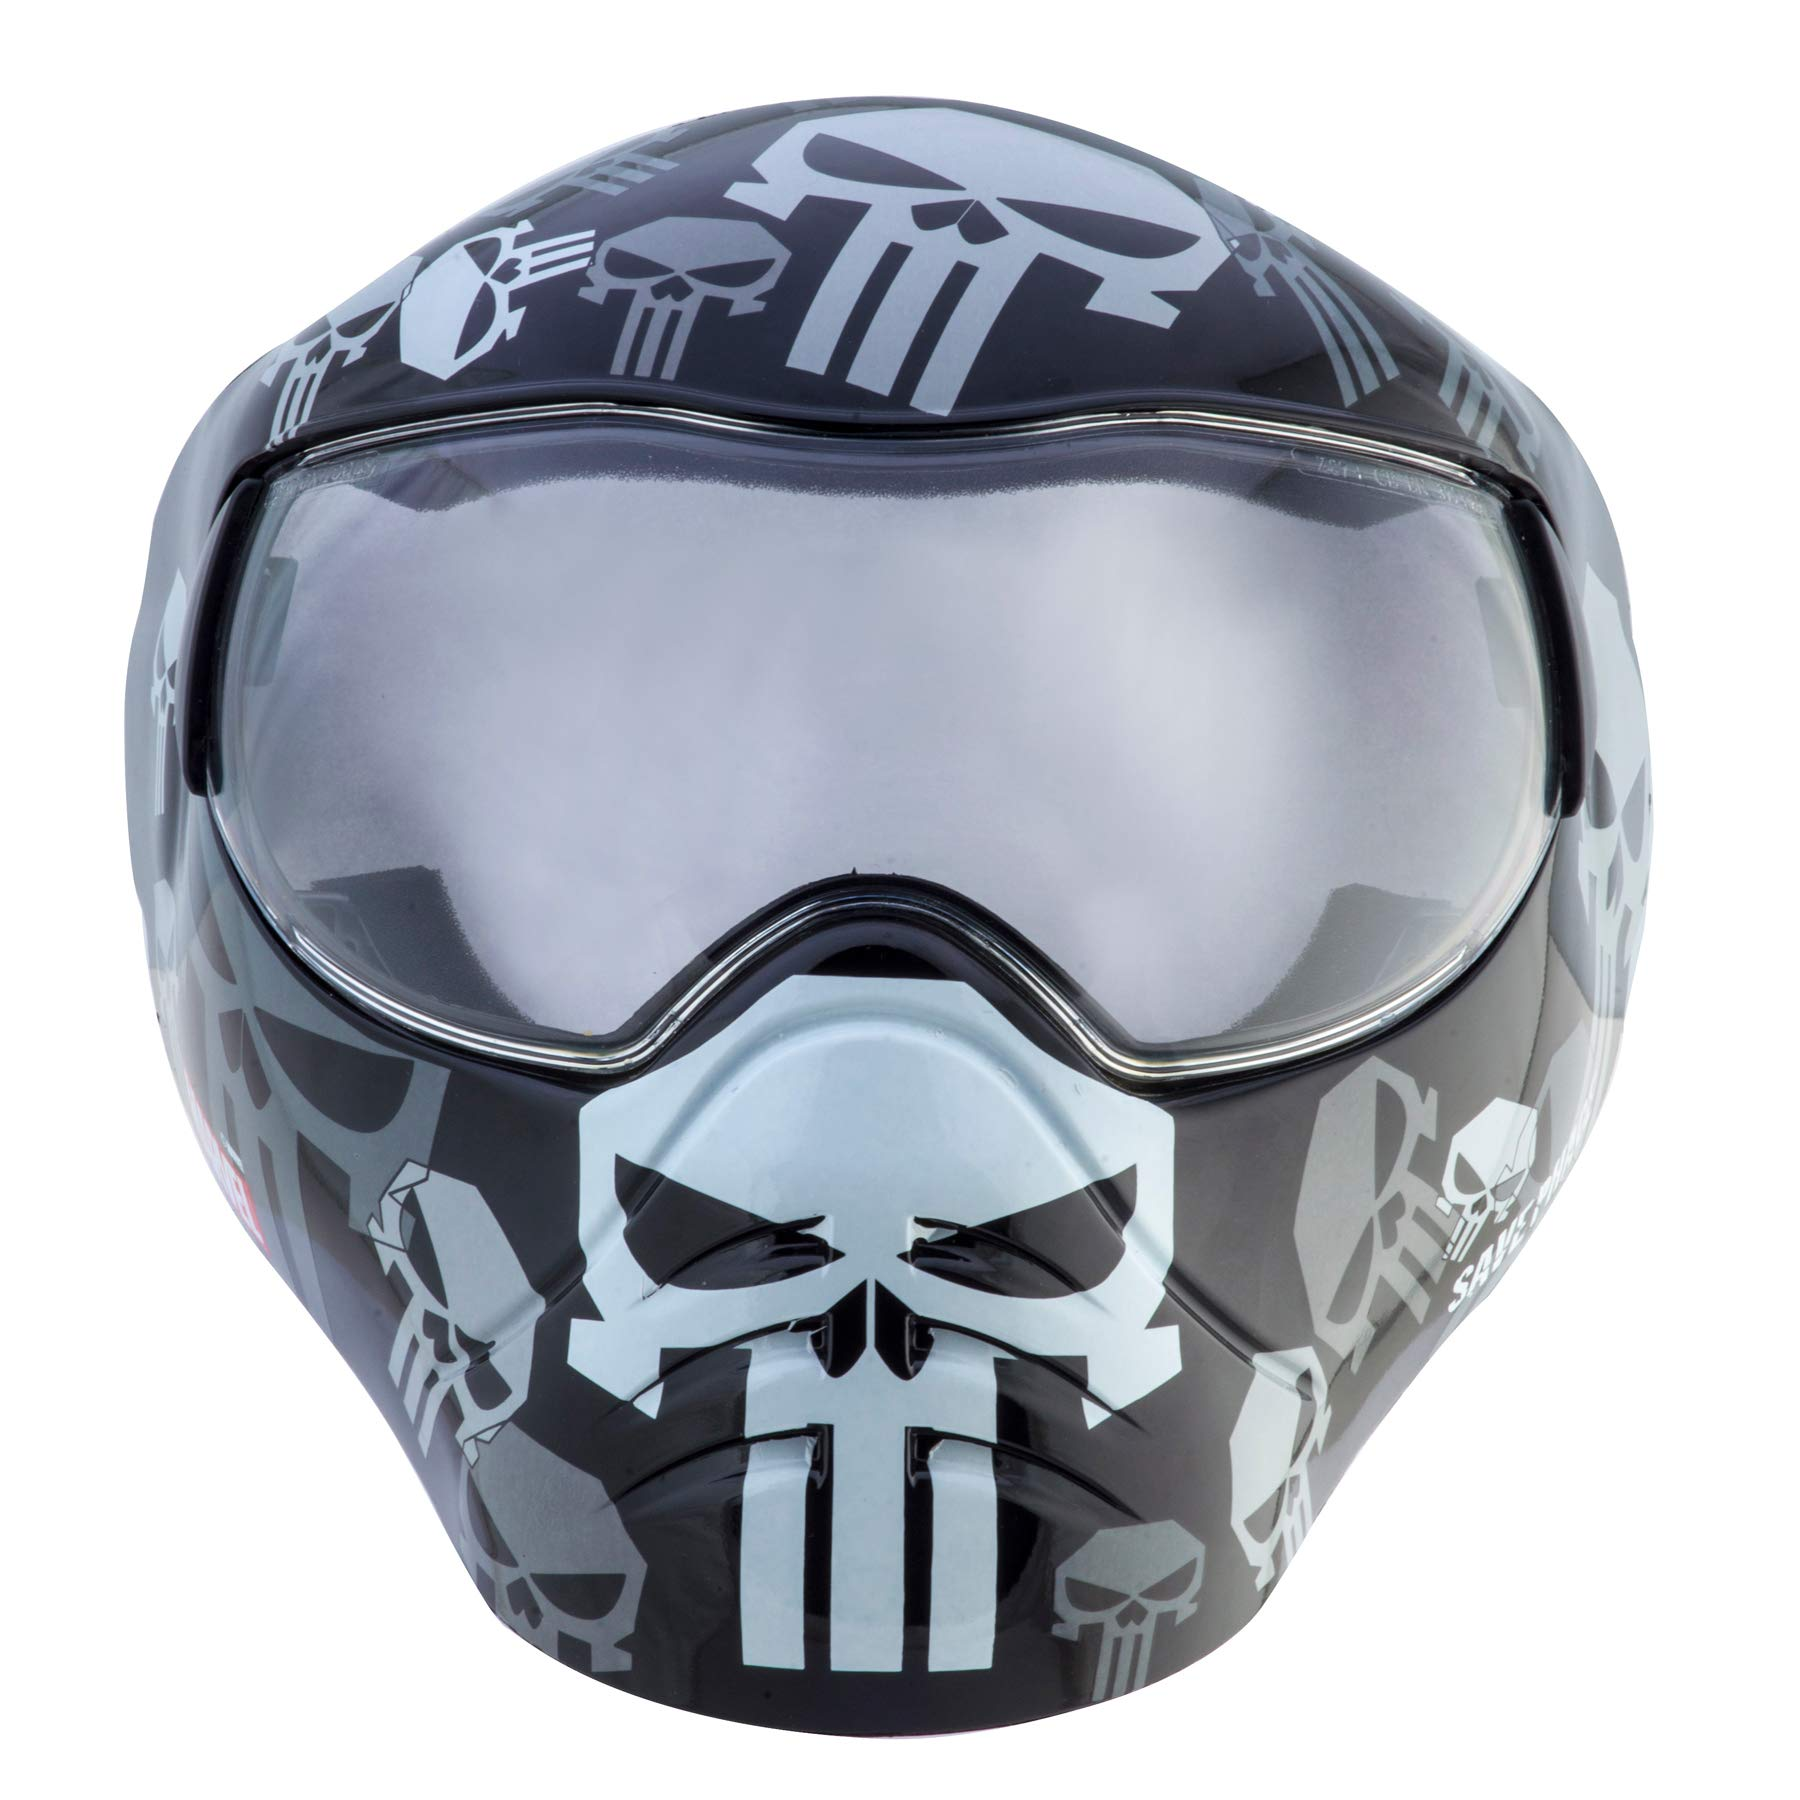 Save Phace 3012763 SUM Series Punisher Sport Utility Mask by Save Phace (Image #1)